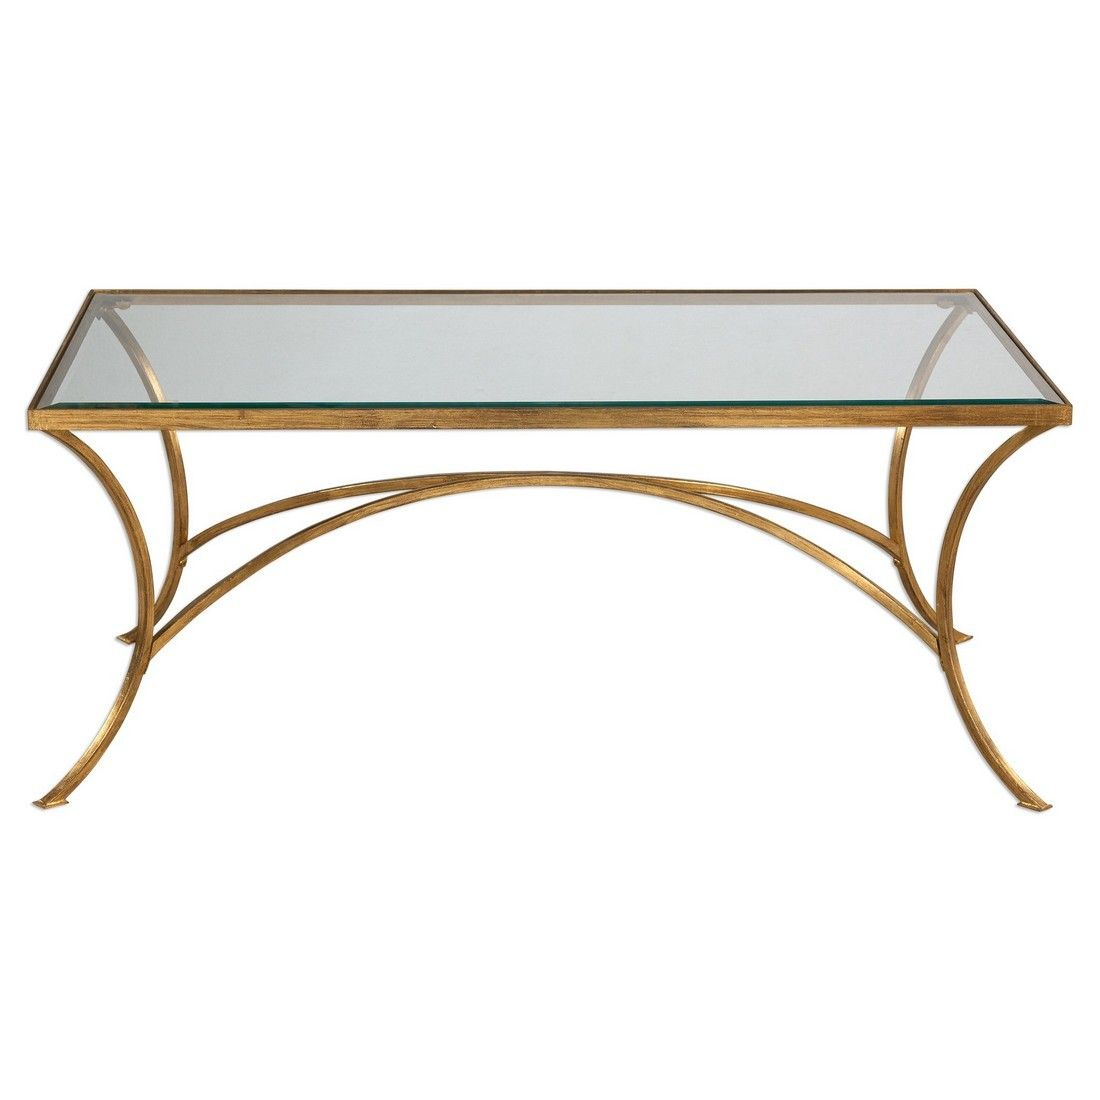 Uttermost Alayna Clear Beveled Gl Coffee Table In Antique Gold Leaf